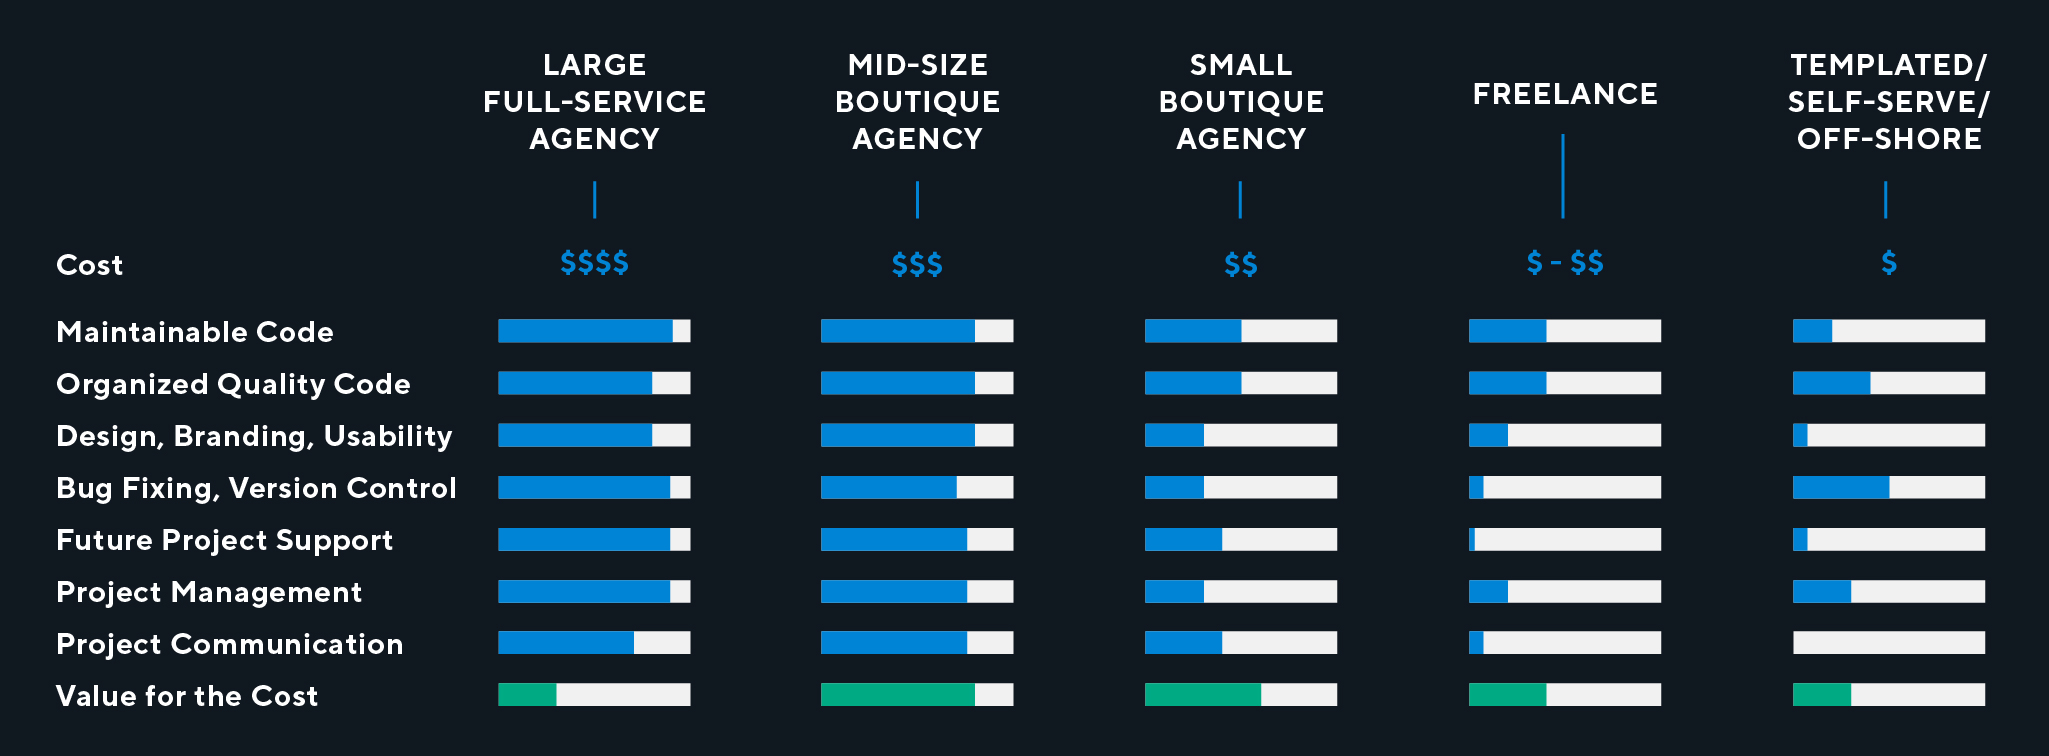 Agency value per cost of website design.